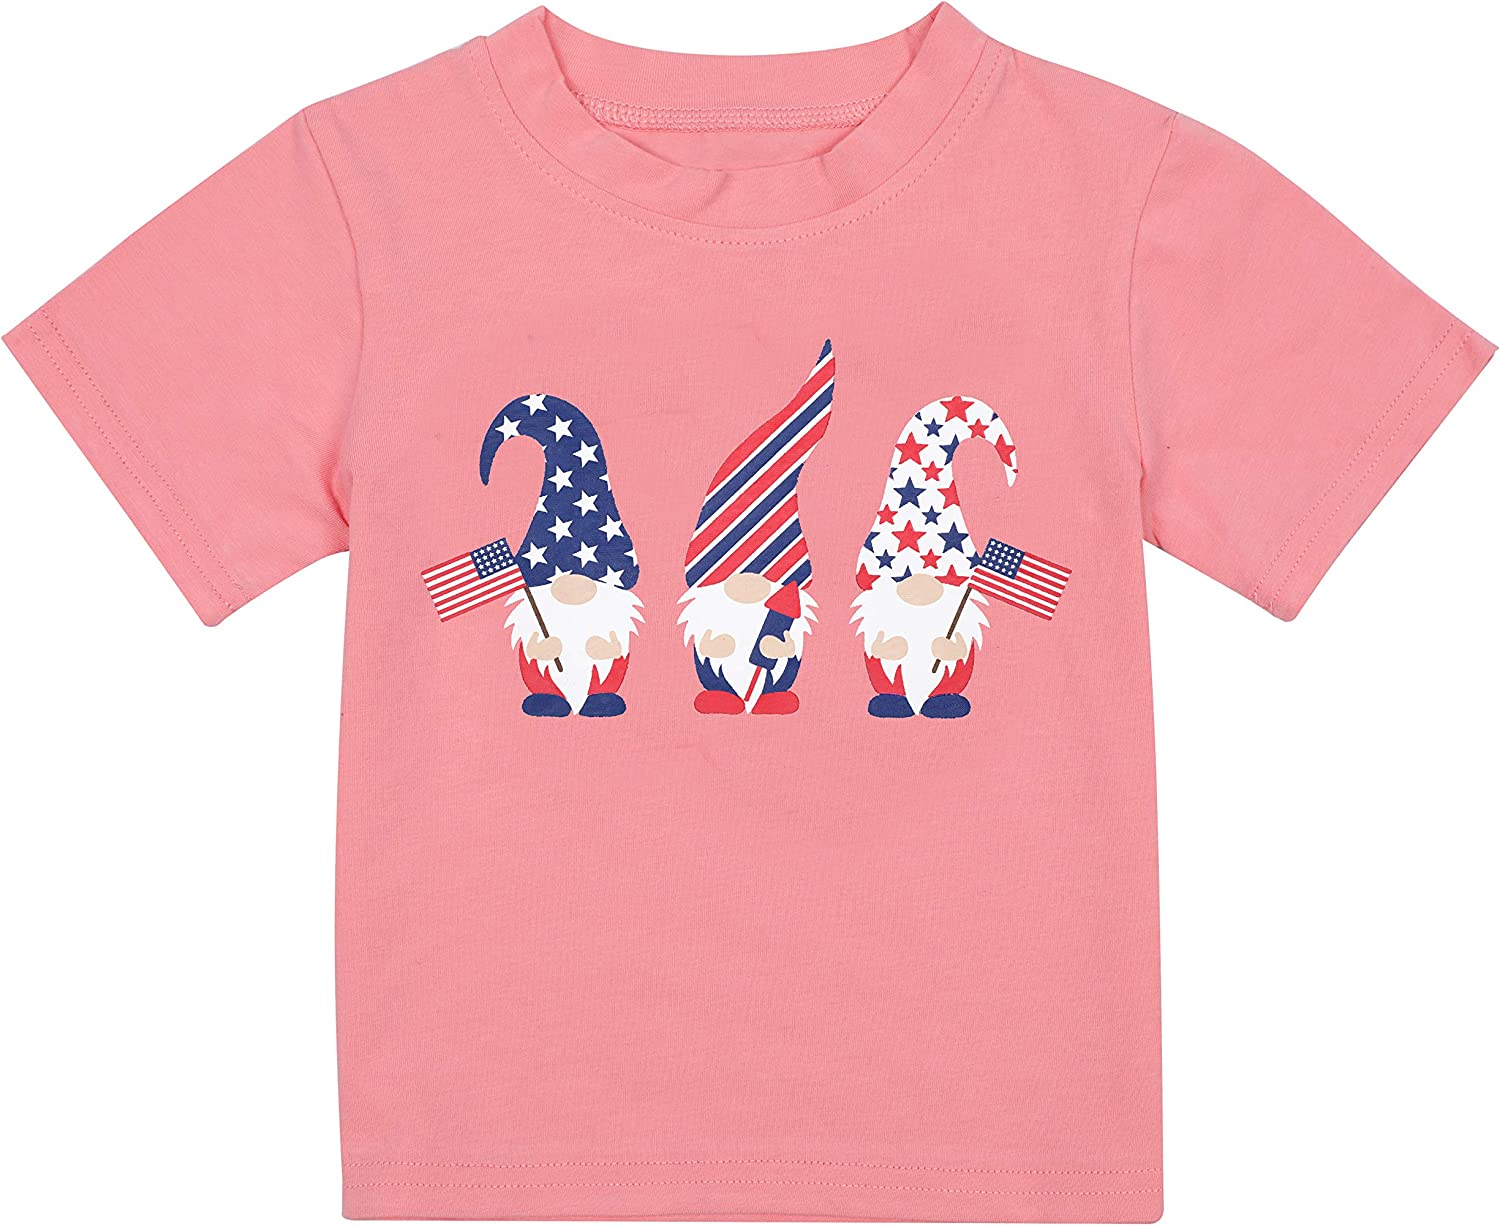 4th of July Toddler Infant Kids T-Shirt Cute Gnomes American Flag Tee Cotton Outfit